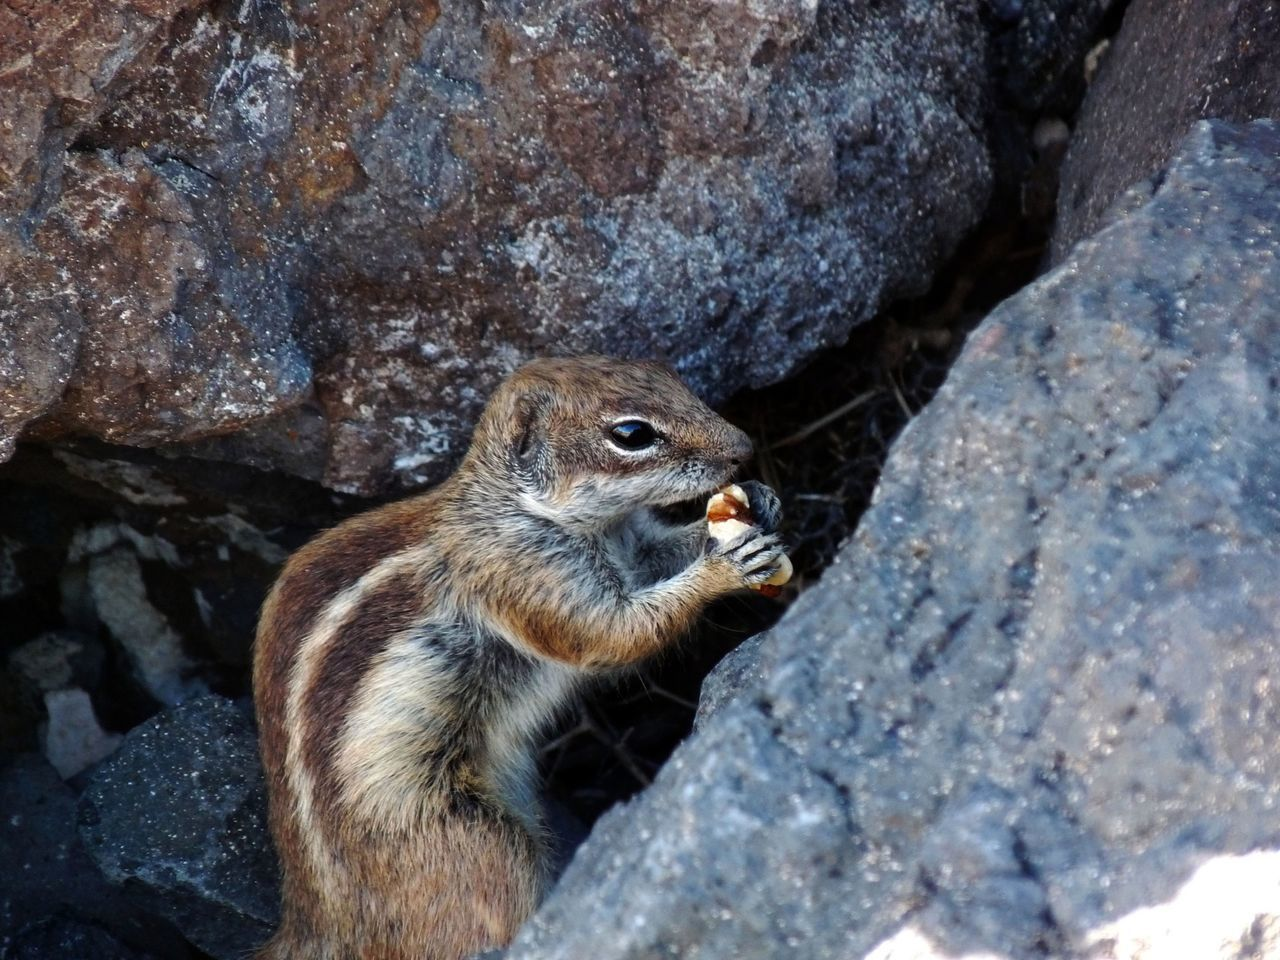 High Angle View Of Chipmunk Holding Food By Rocks